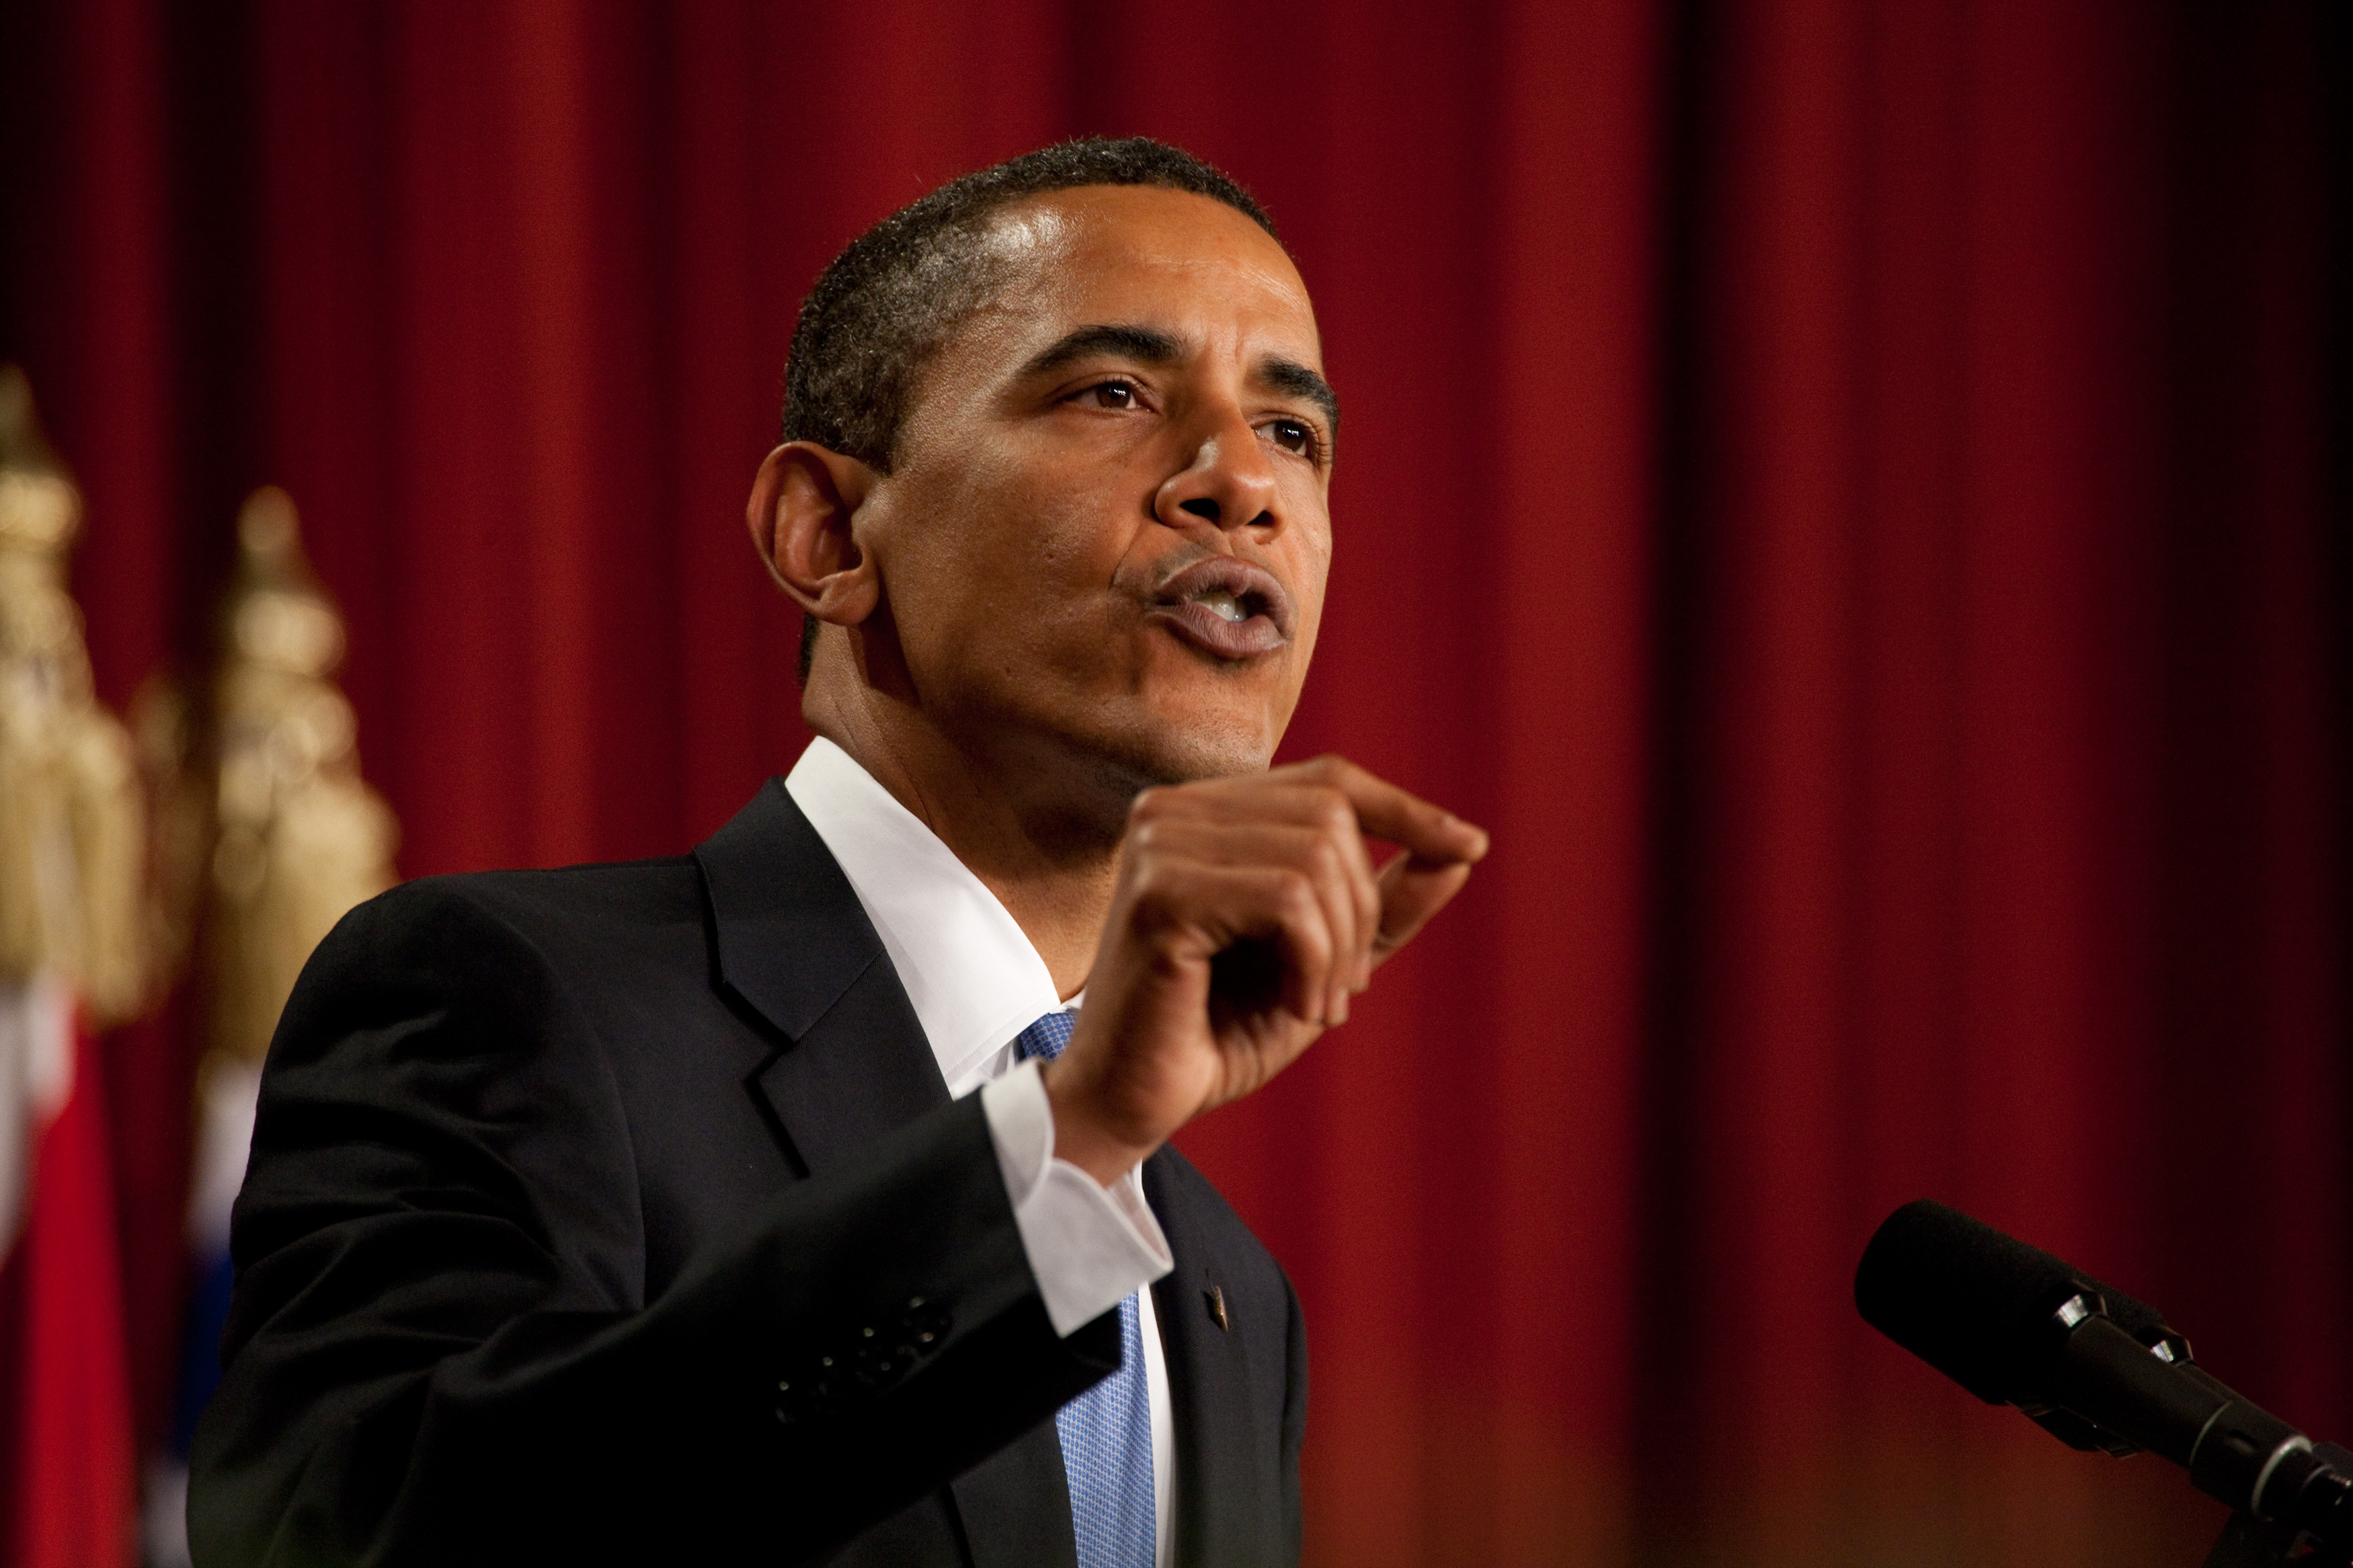 U.S. President Barack Obama hopes to protect 14 million LGBT employees from discrimination with an executive order.